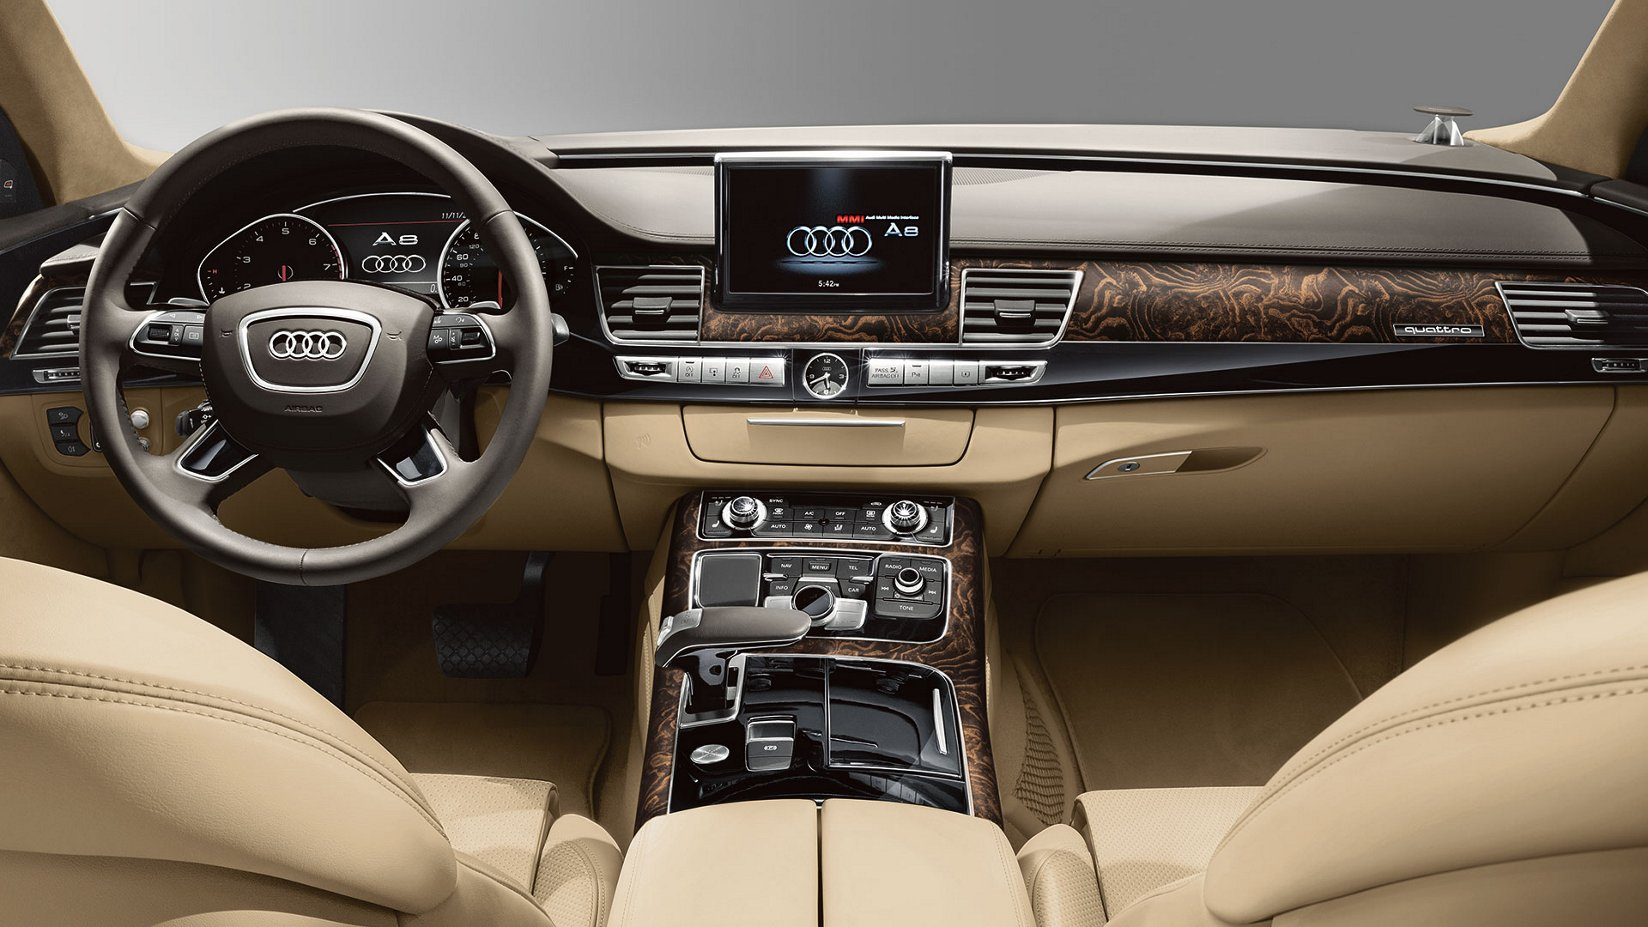 Audi A8 Interior Instainterior Us